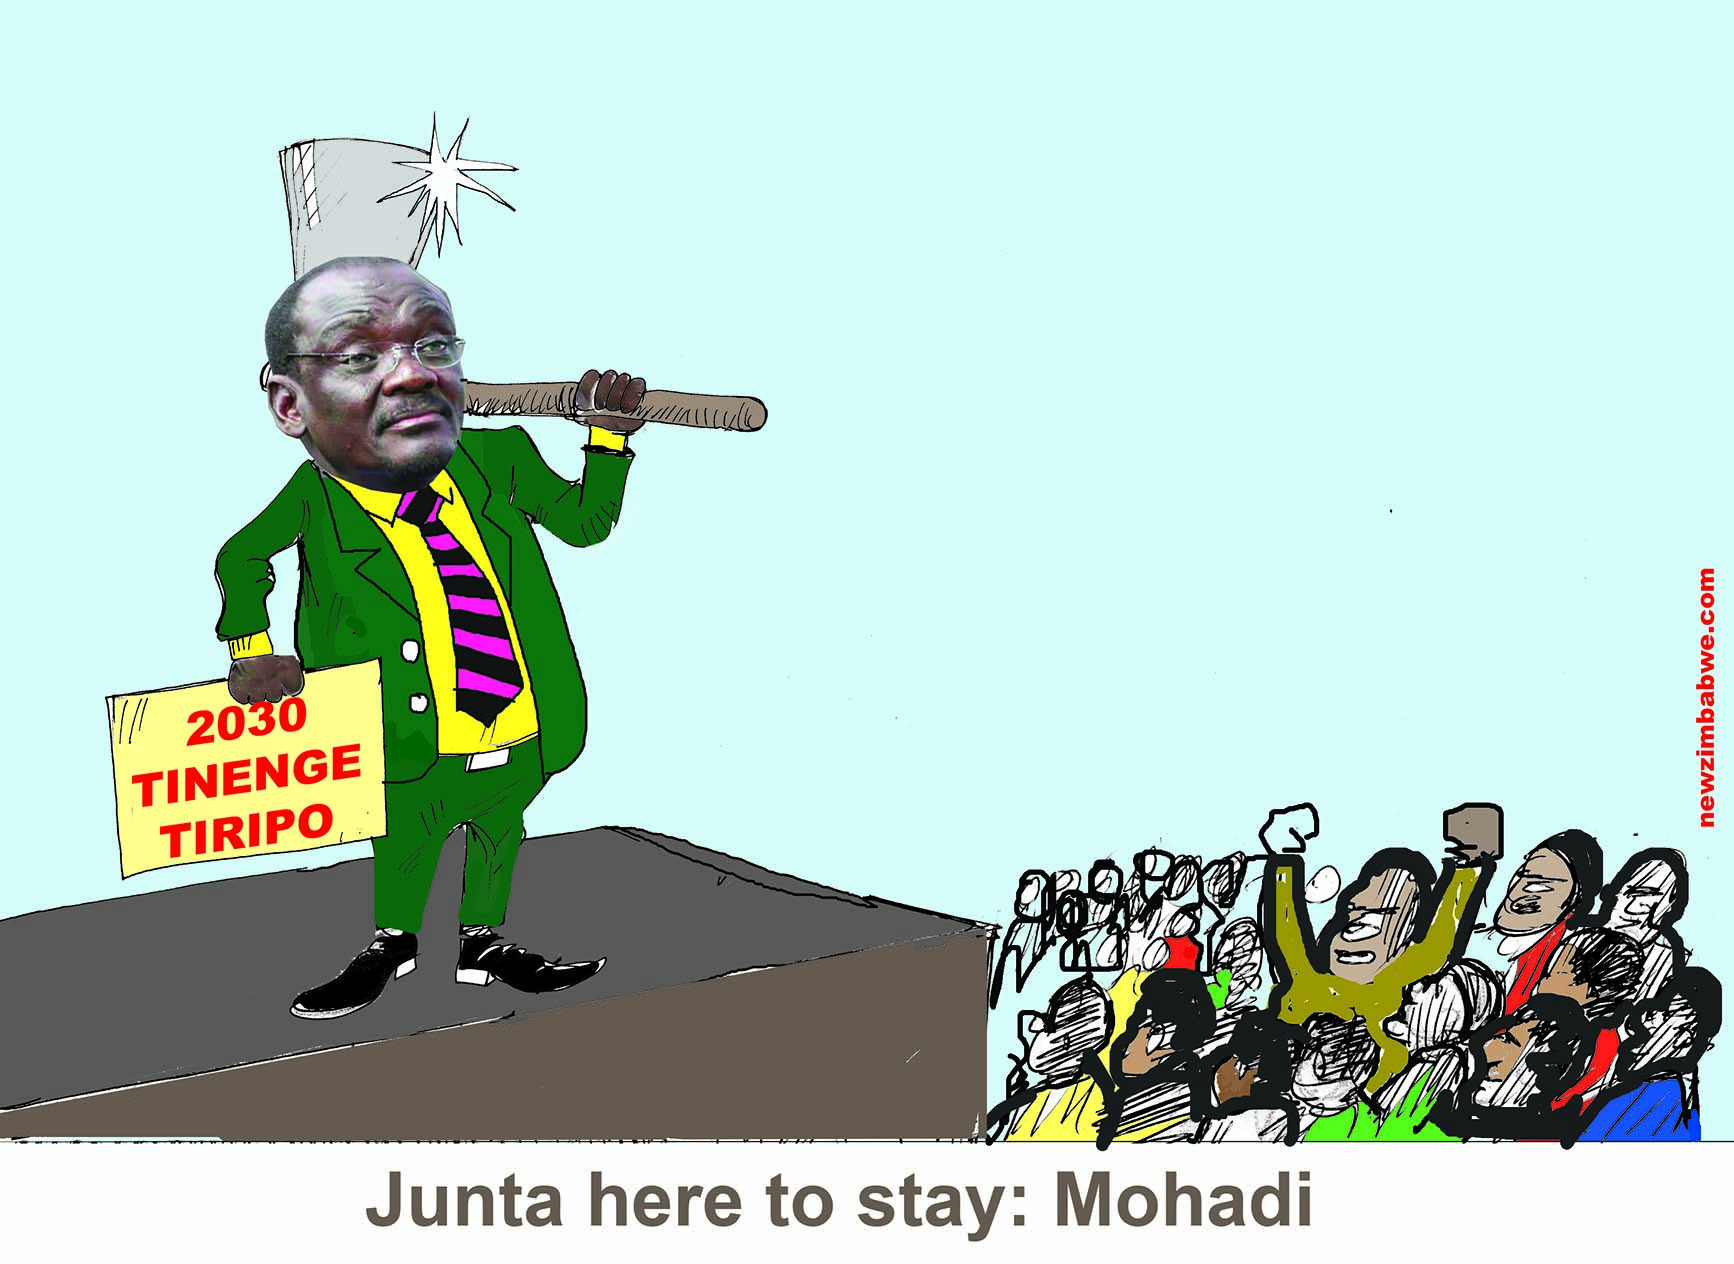 Junta here to stay